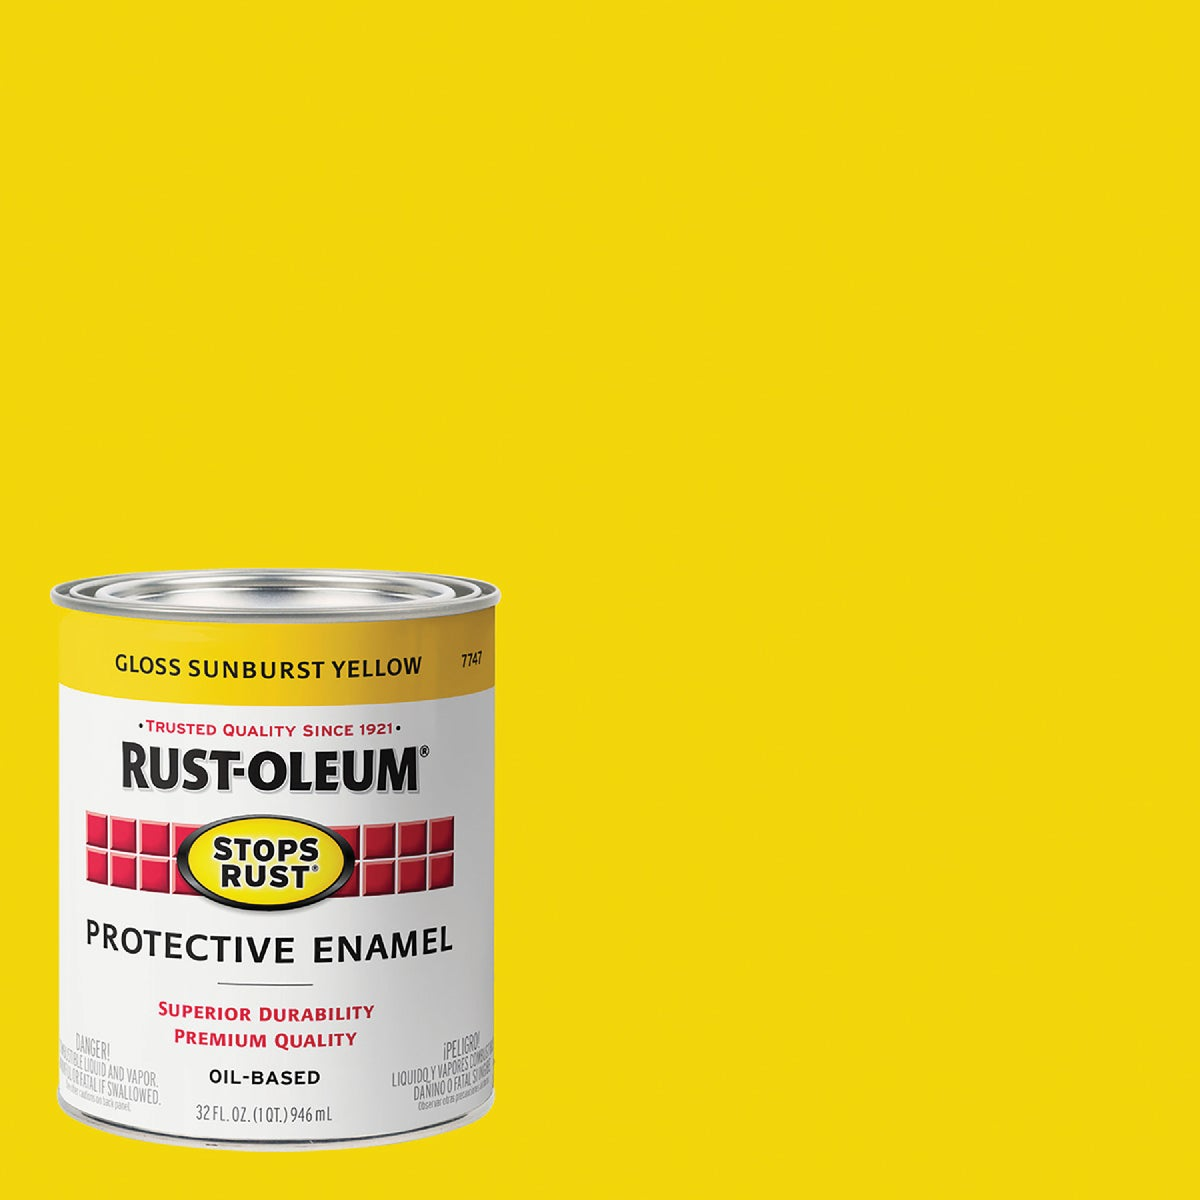 SUNBURST YELLOW ENAMEL - 7747-502 by Rustoleum